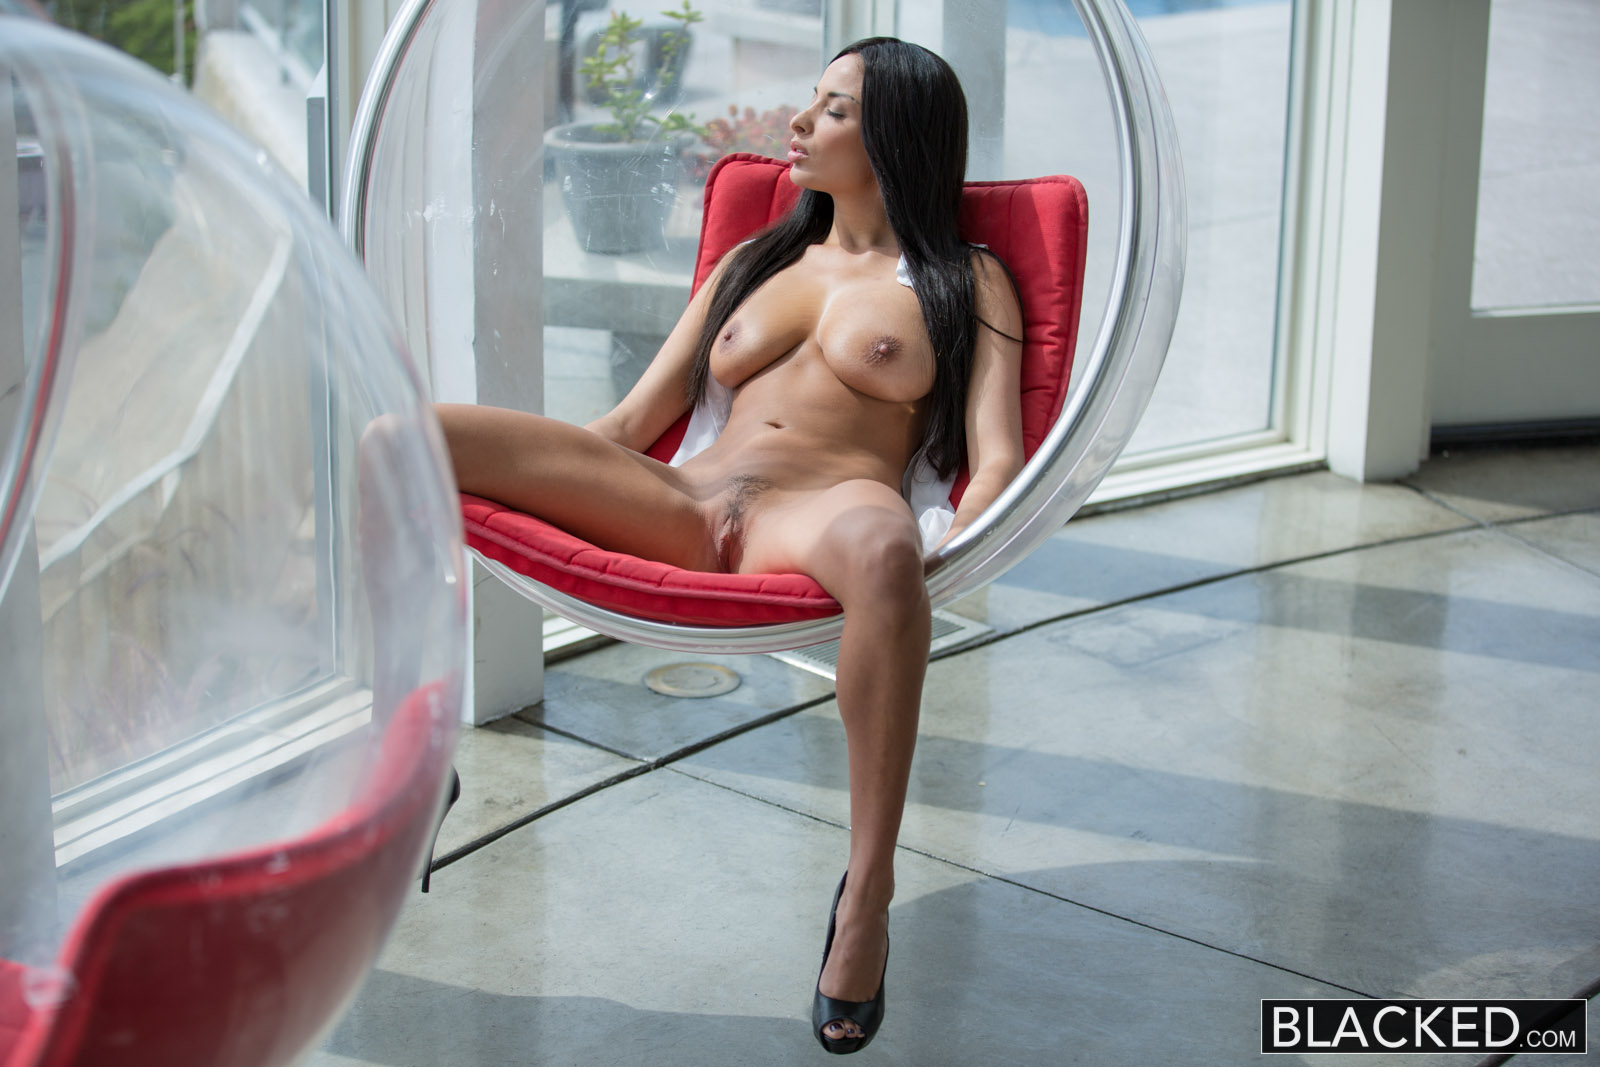 Anissa kate blacked